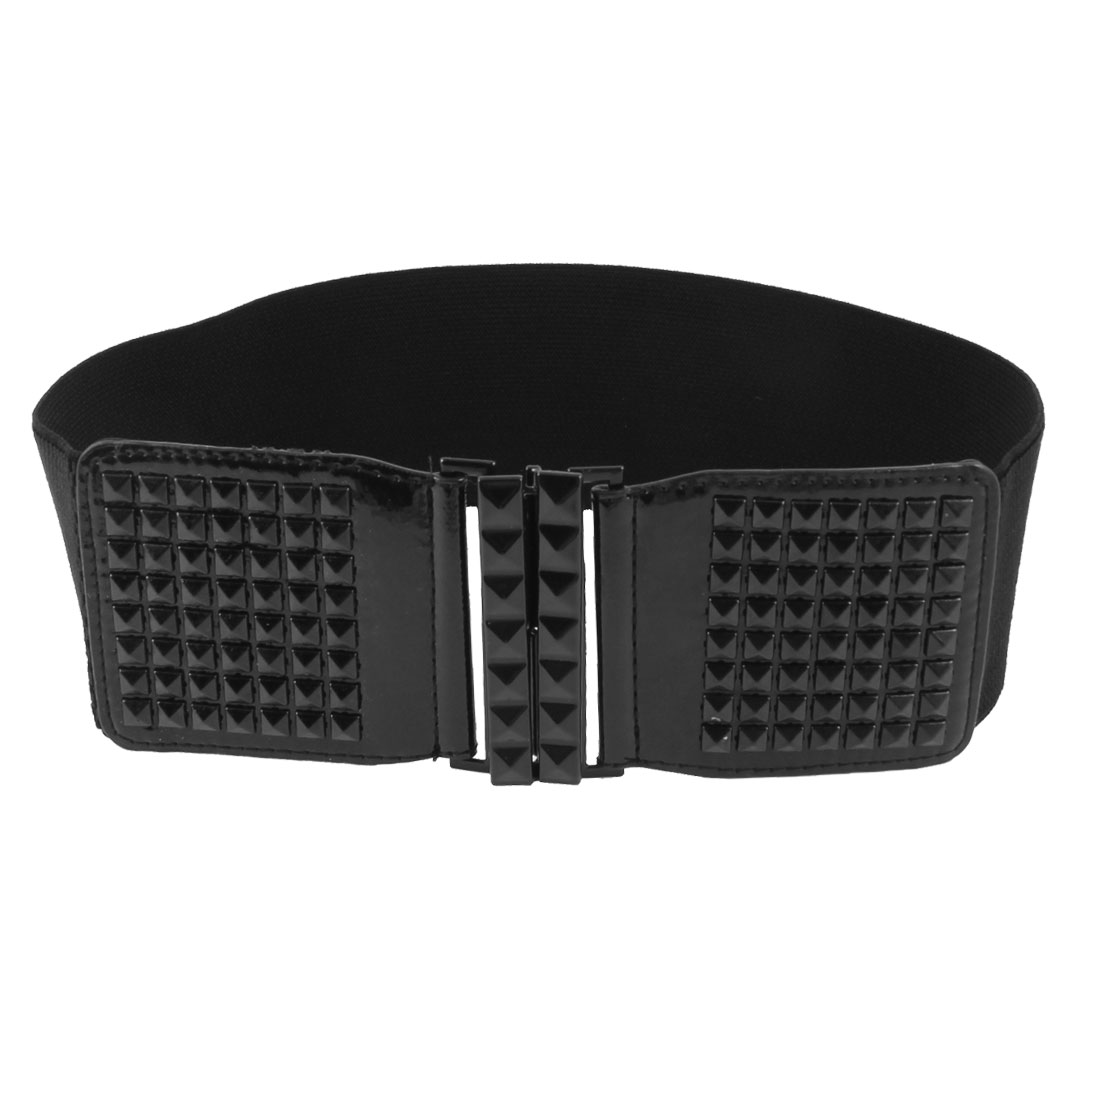 Square Faceted Bead Interlock Buckle 7cm Wide Elastic Black Waist Belt for Women